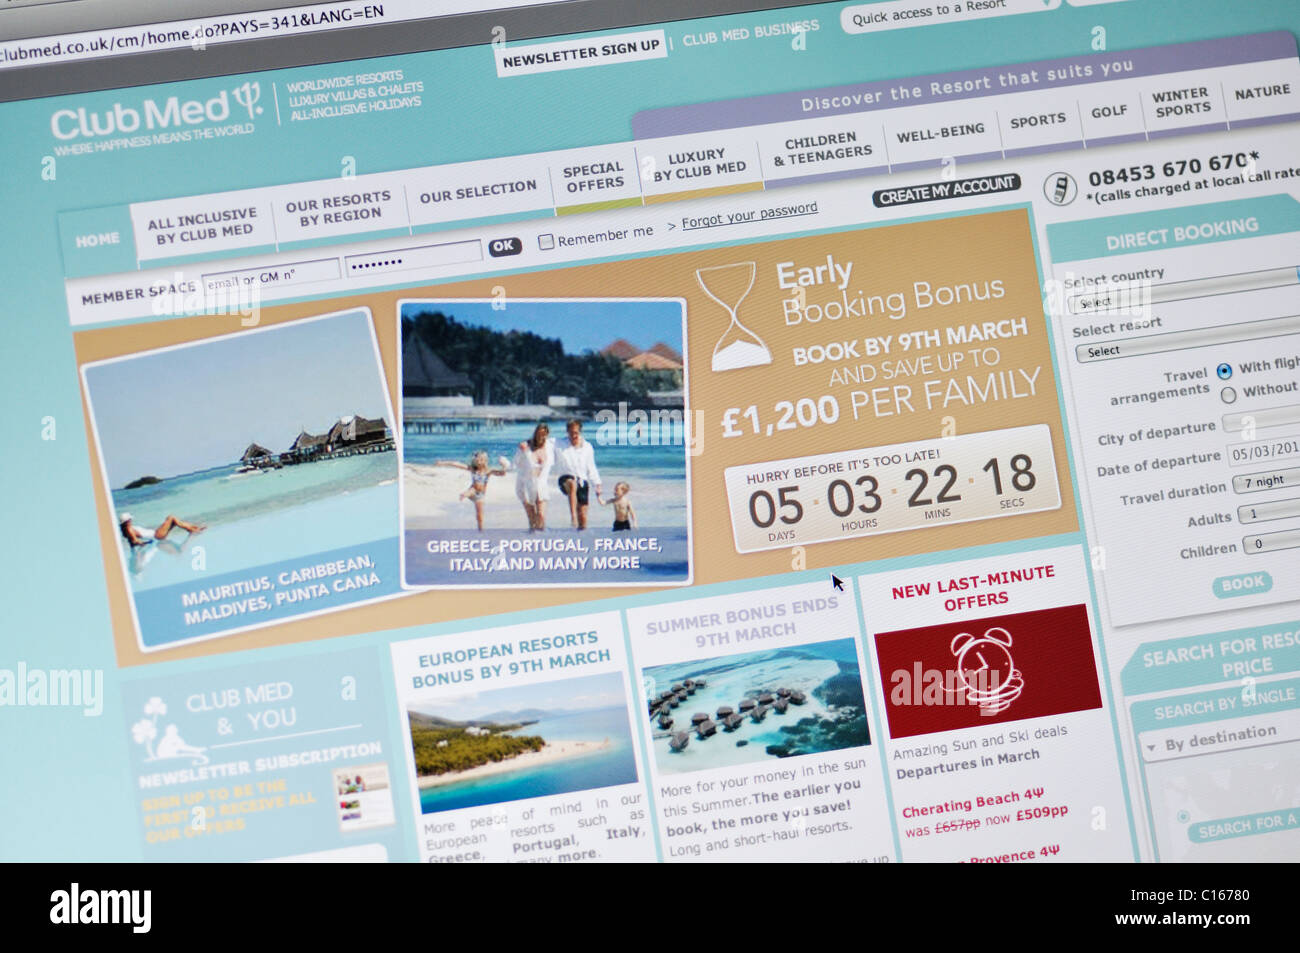 Club Med website - all inclusive family vacation resorts - Stock Image